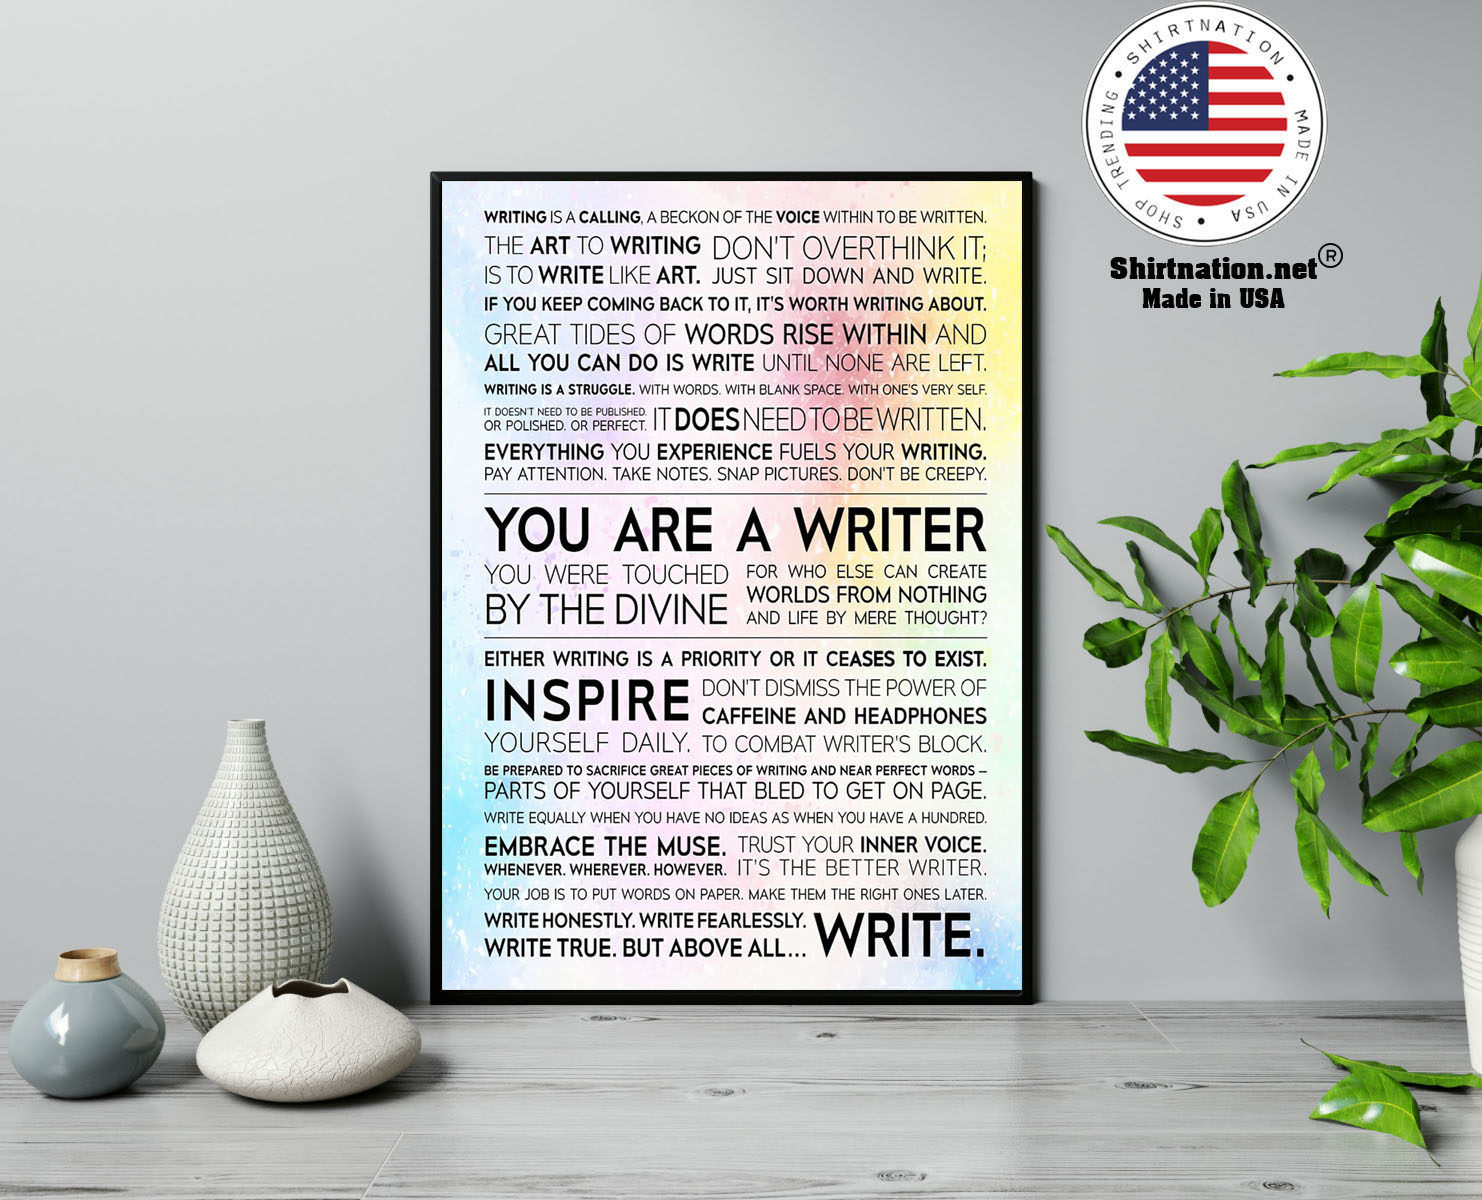 Writer Manifesto writing is a calling a beckon of the voice poster 13 1